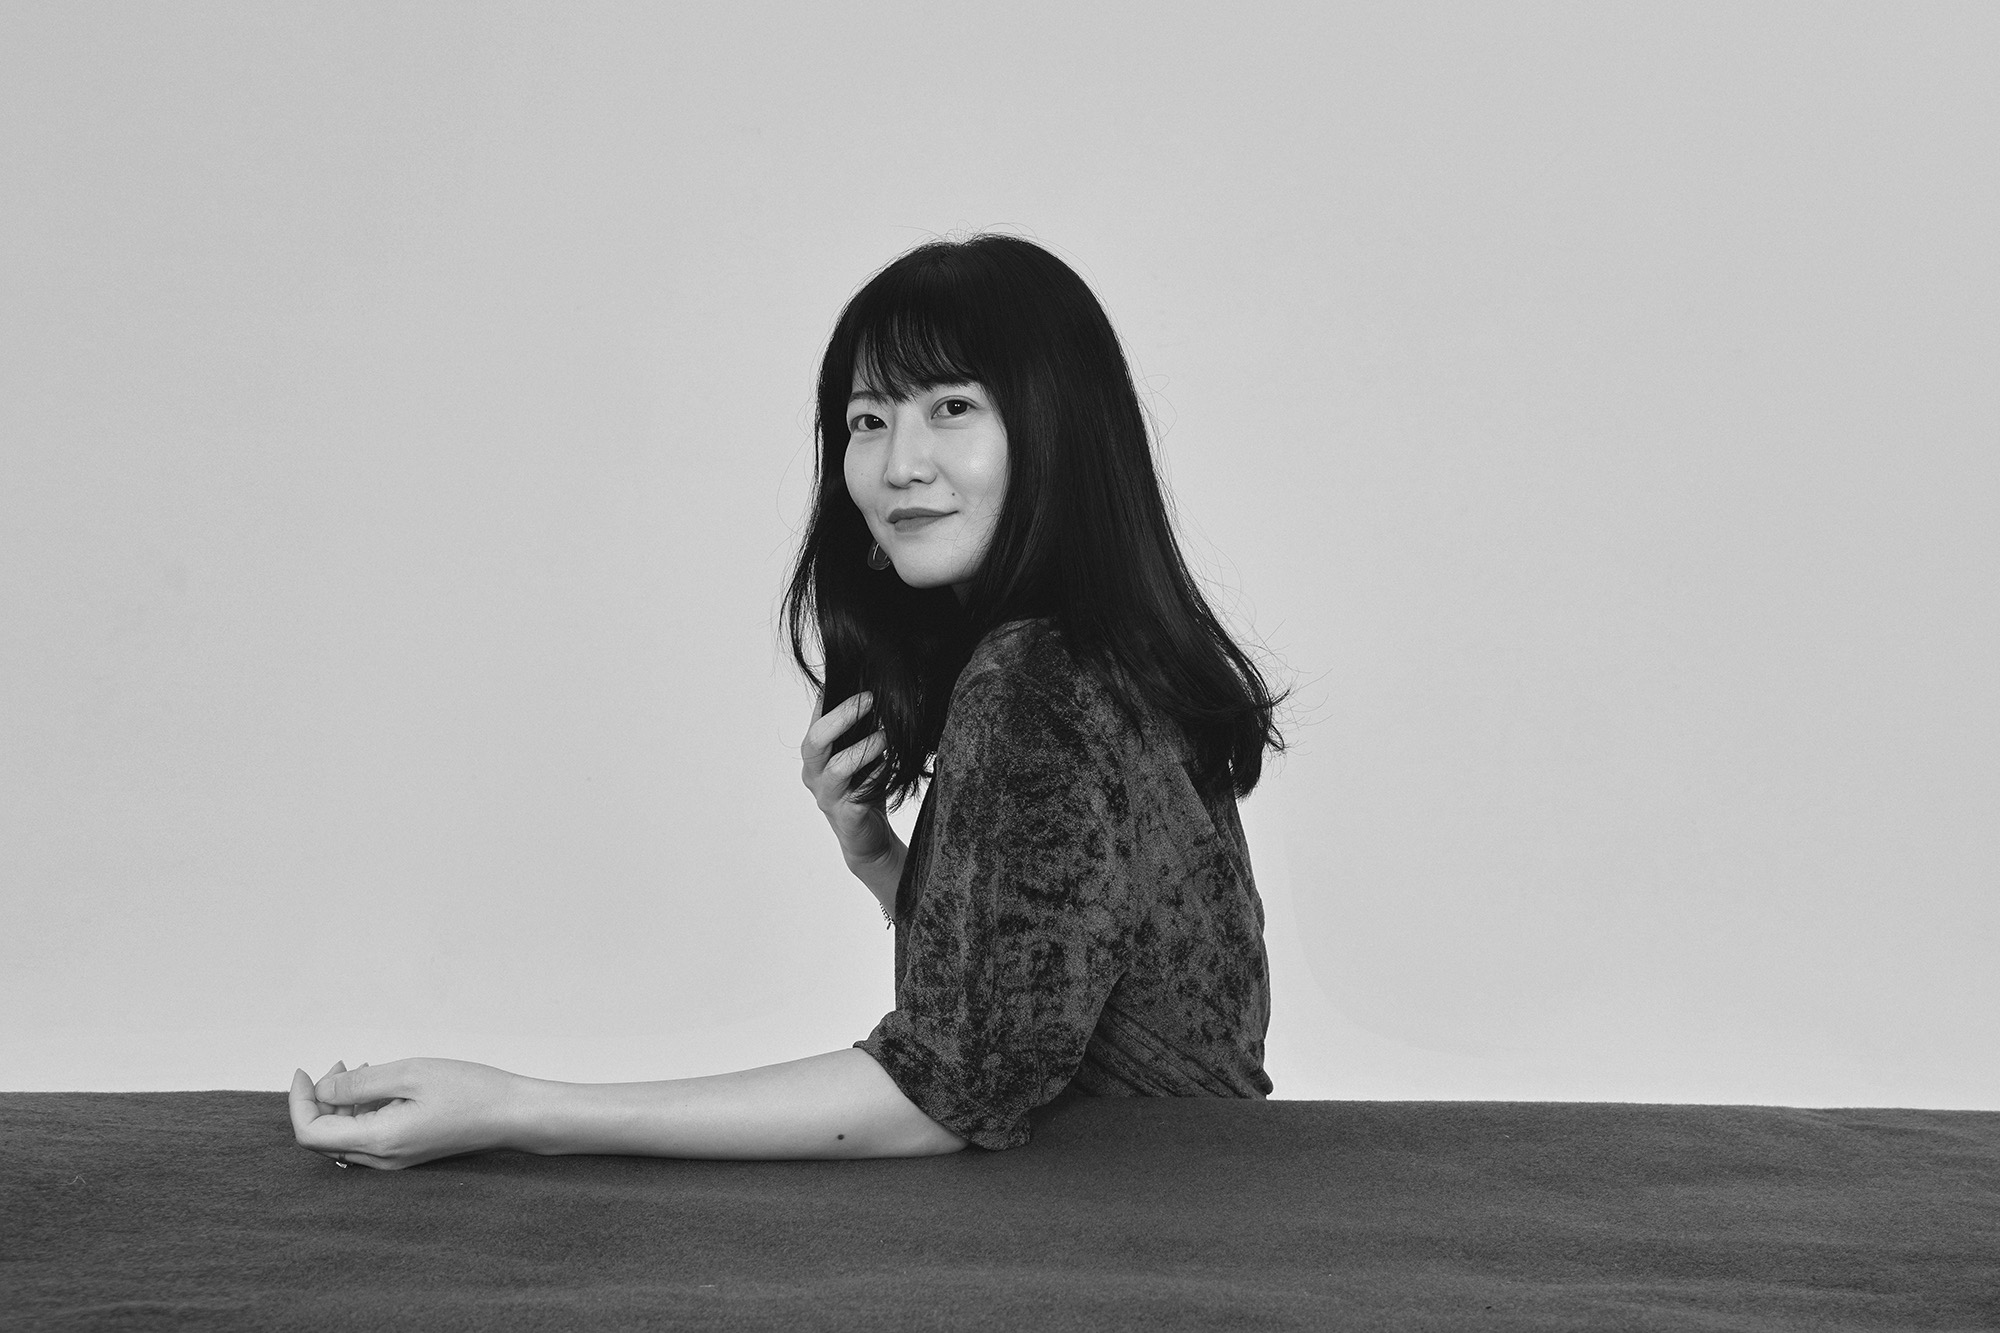 """""""I've never positioned myself as a female photographer per se"""" - Guo Yingguang, photographer & winner of the first Jimei x Arles - Madame Figaro Women Photographers Award"""